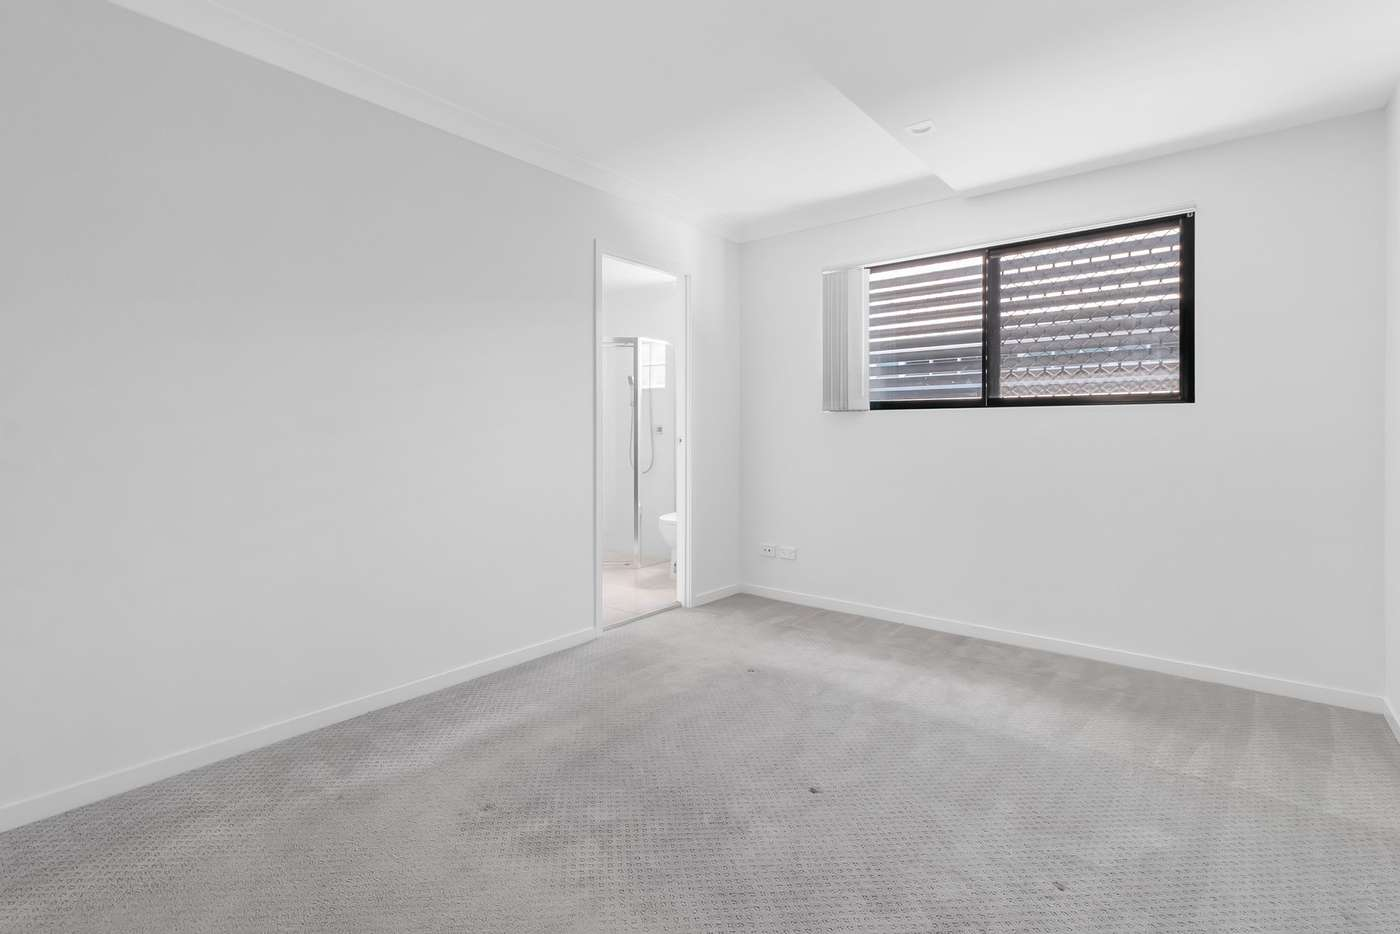 Sixth view of Homely apartment listing, Unit 2/42 Le Geyt Street, Windsor QLD 4030